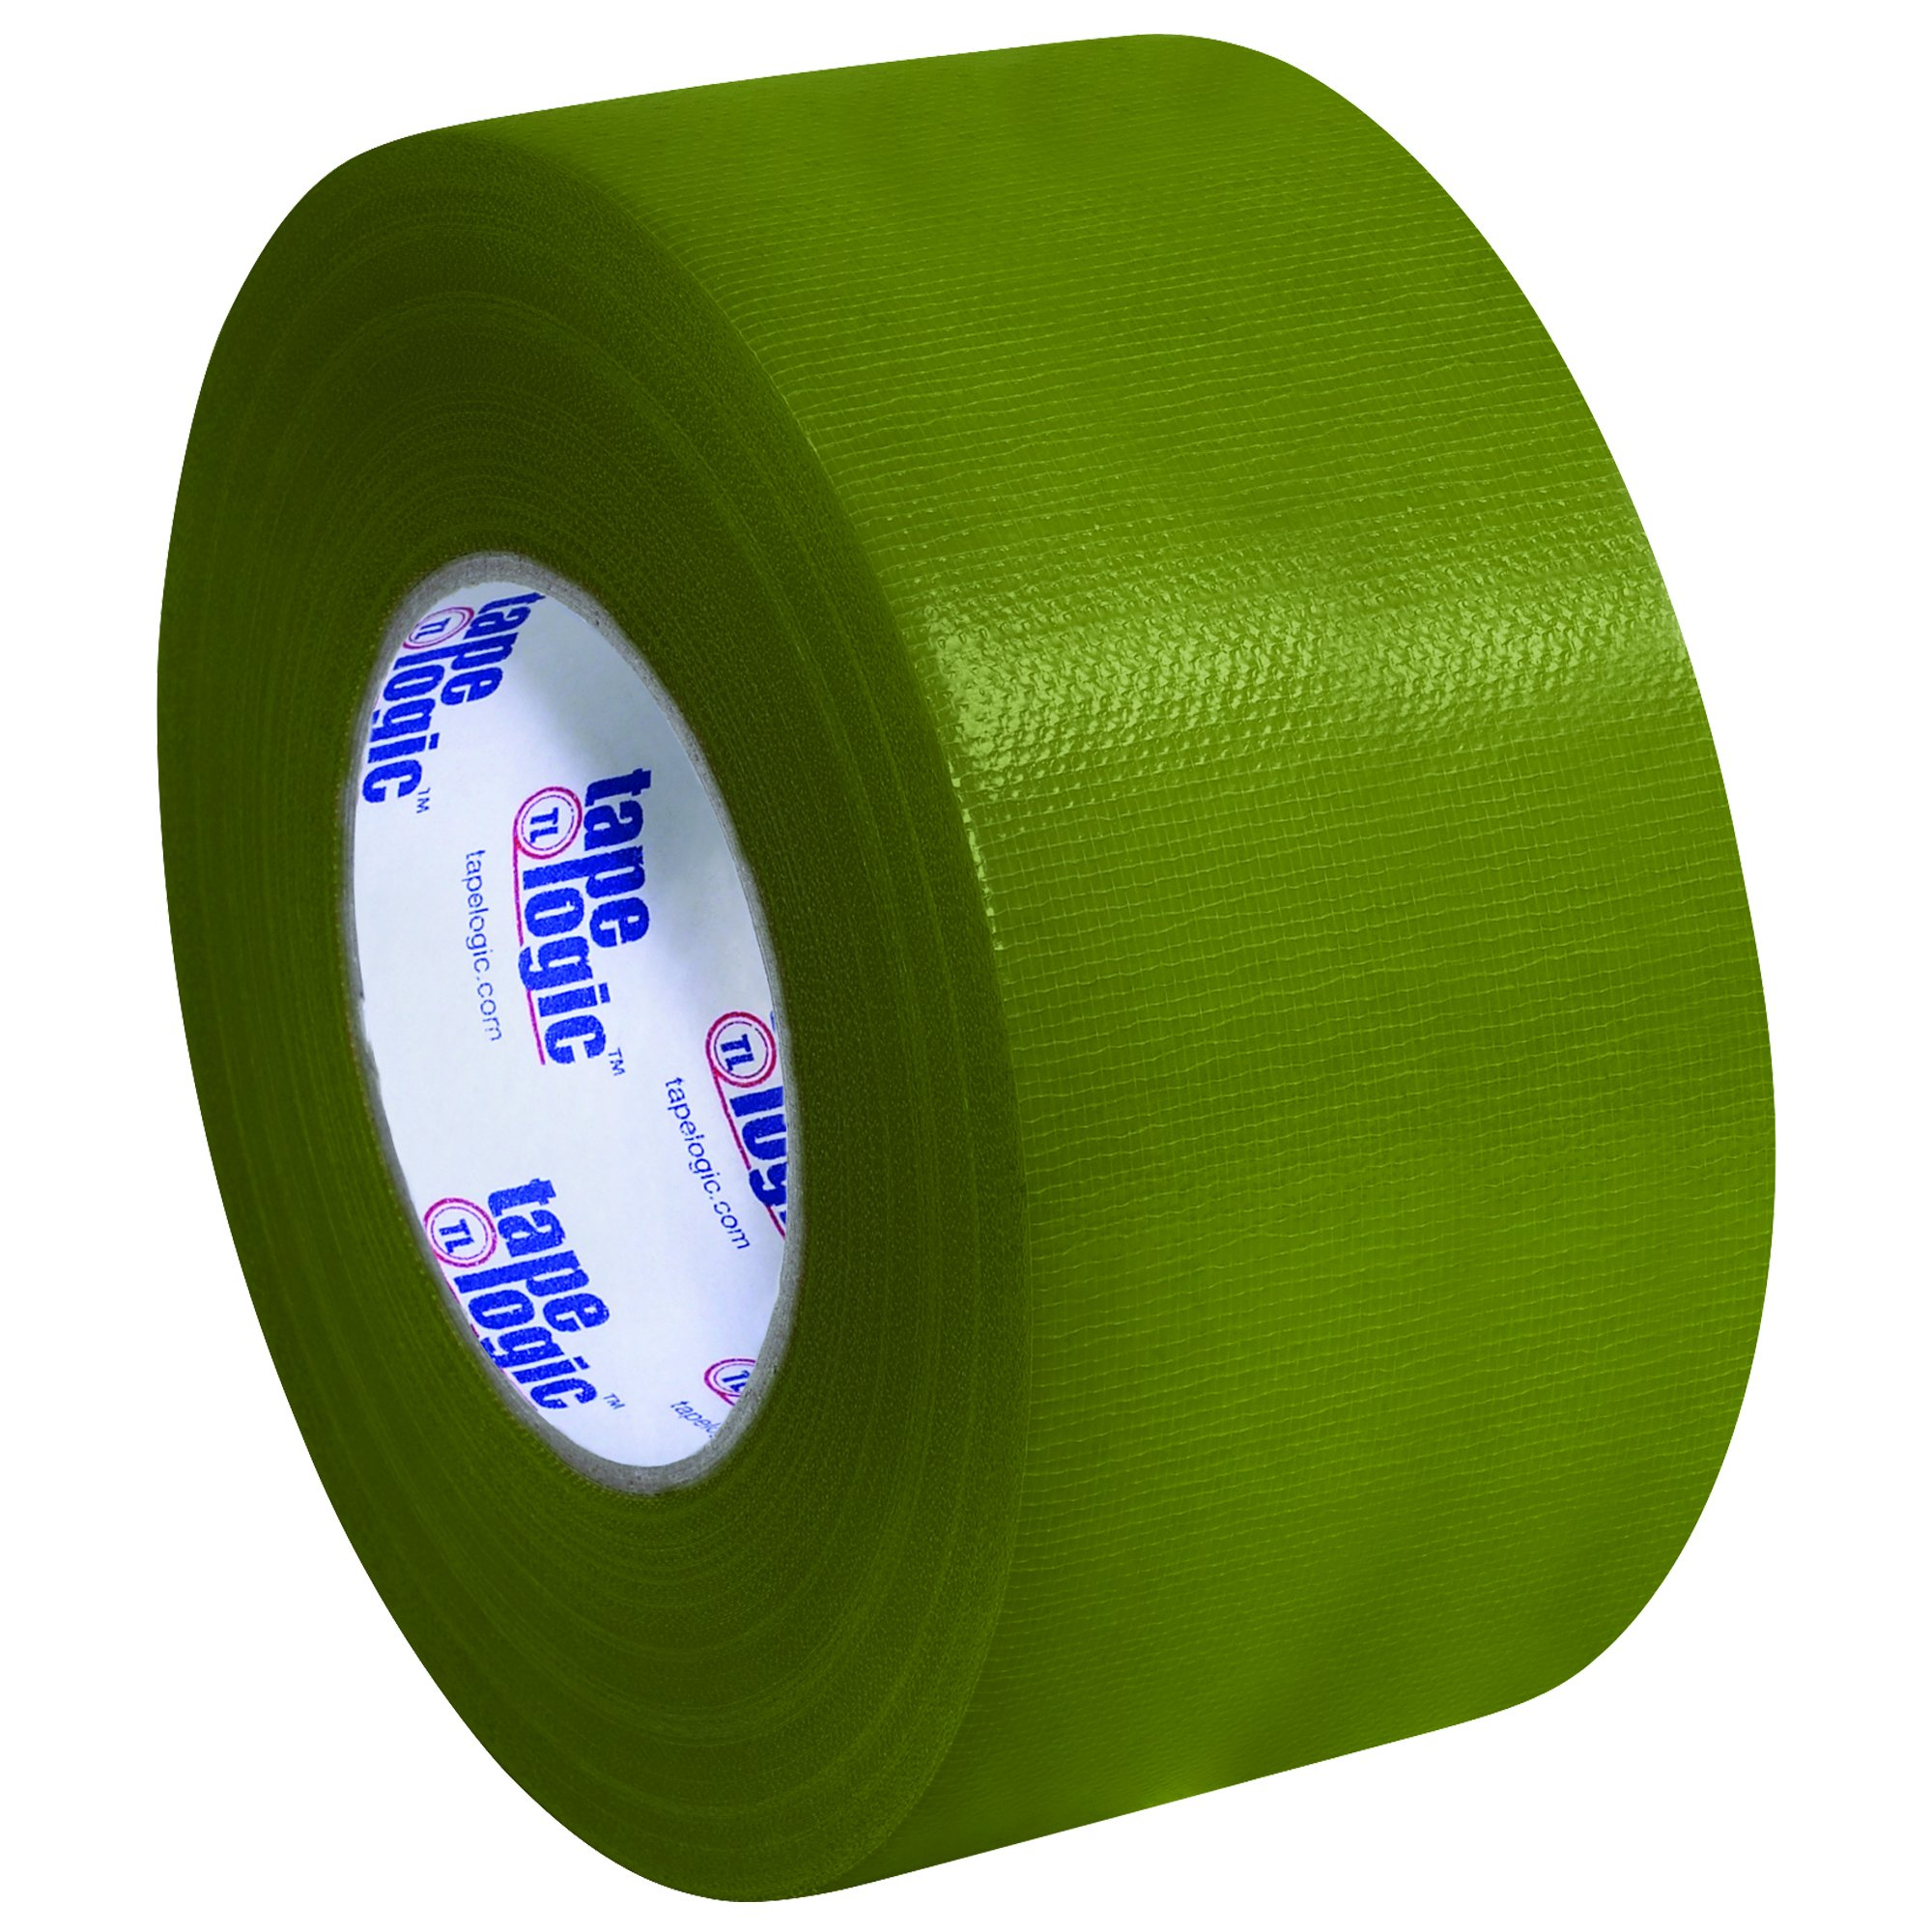 BOX USA BT988100LV Olive Green Tape Logic Duct Tape, 10 mil, 3'' x 60 yd. (Pack of 16) by BOX USA